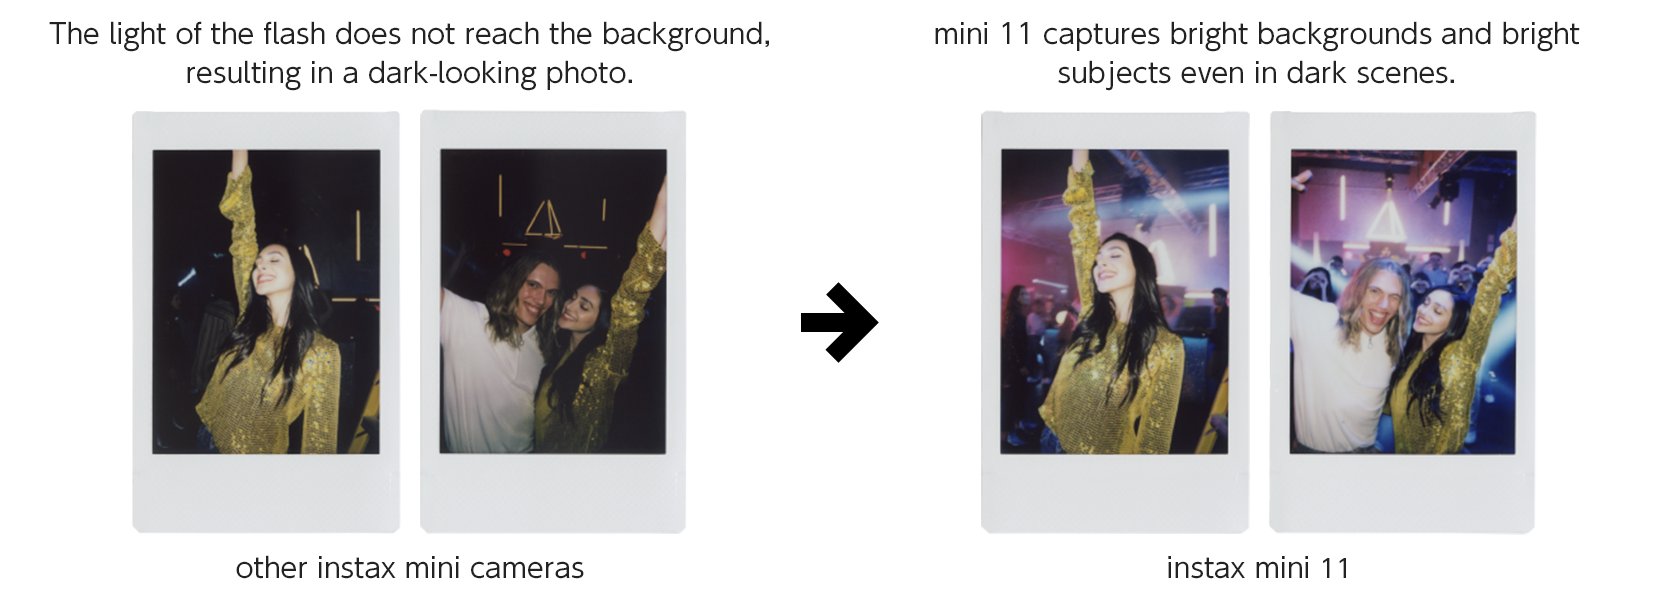 [photo] Photo prints of woman with dark background taken with instax mini camera versus same pictures with bright backgrounds, taken with instax mini 11